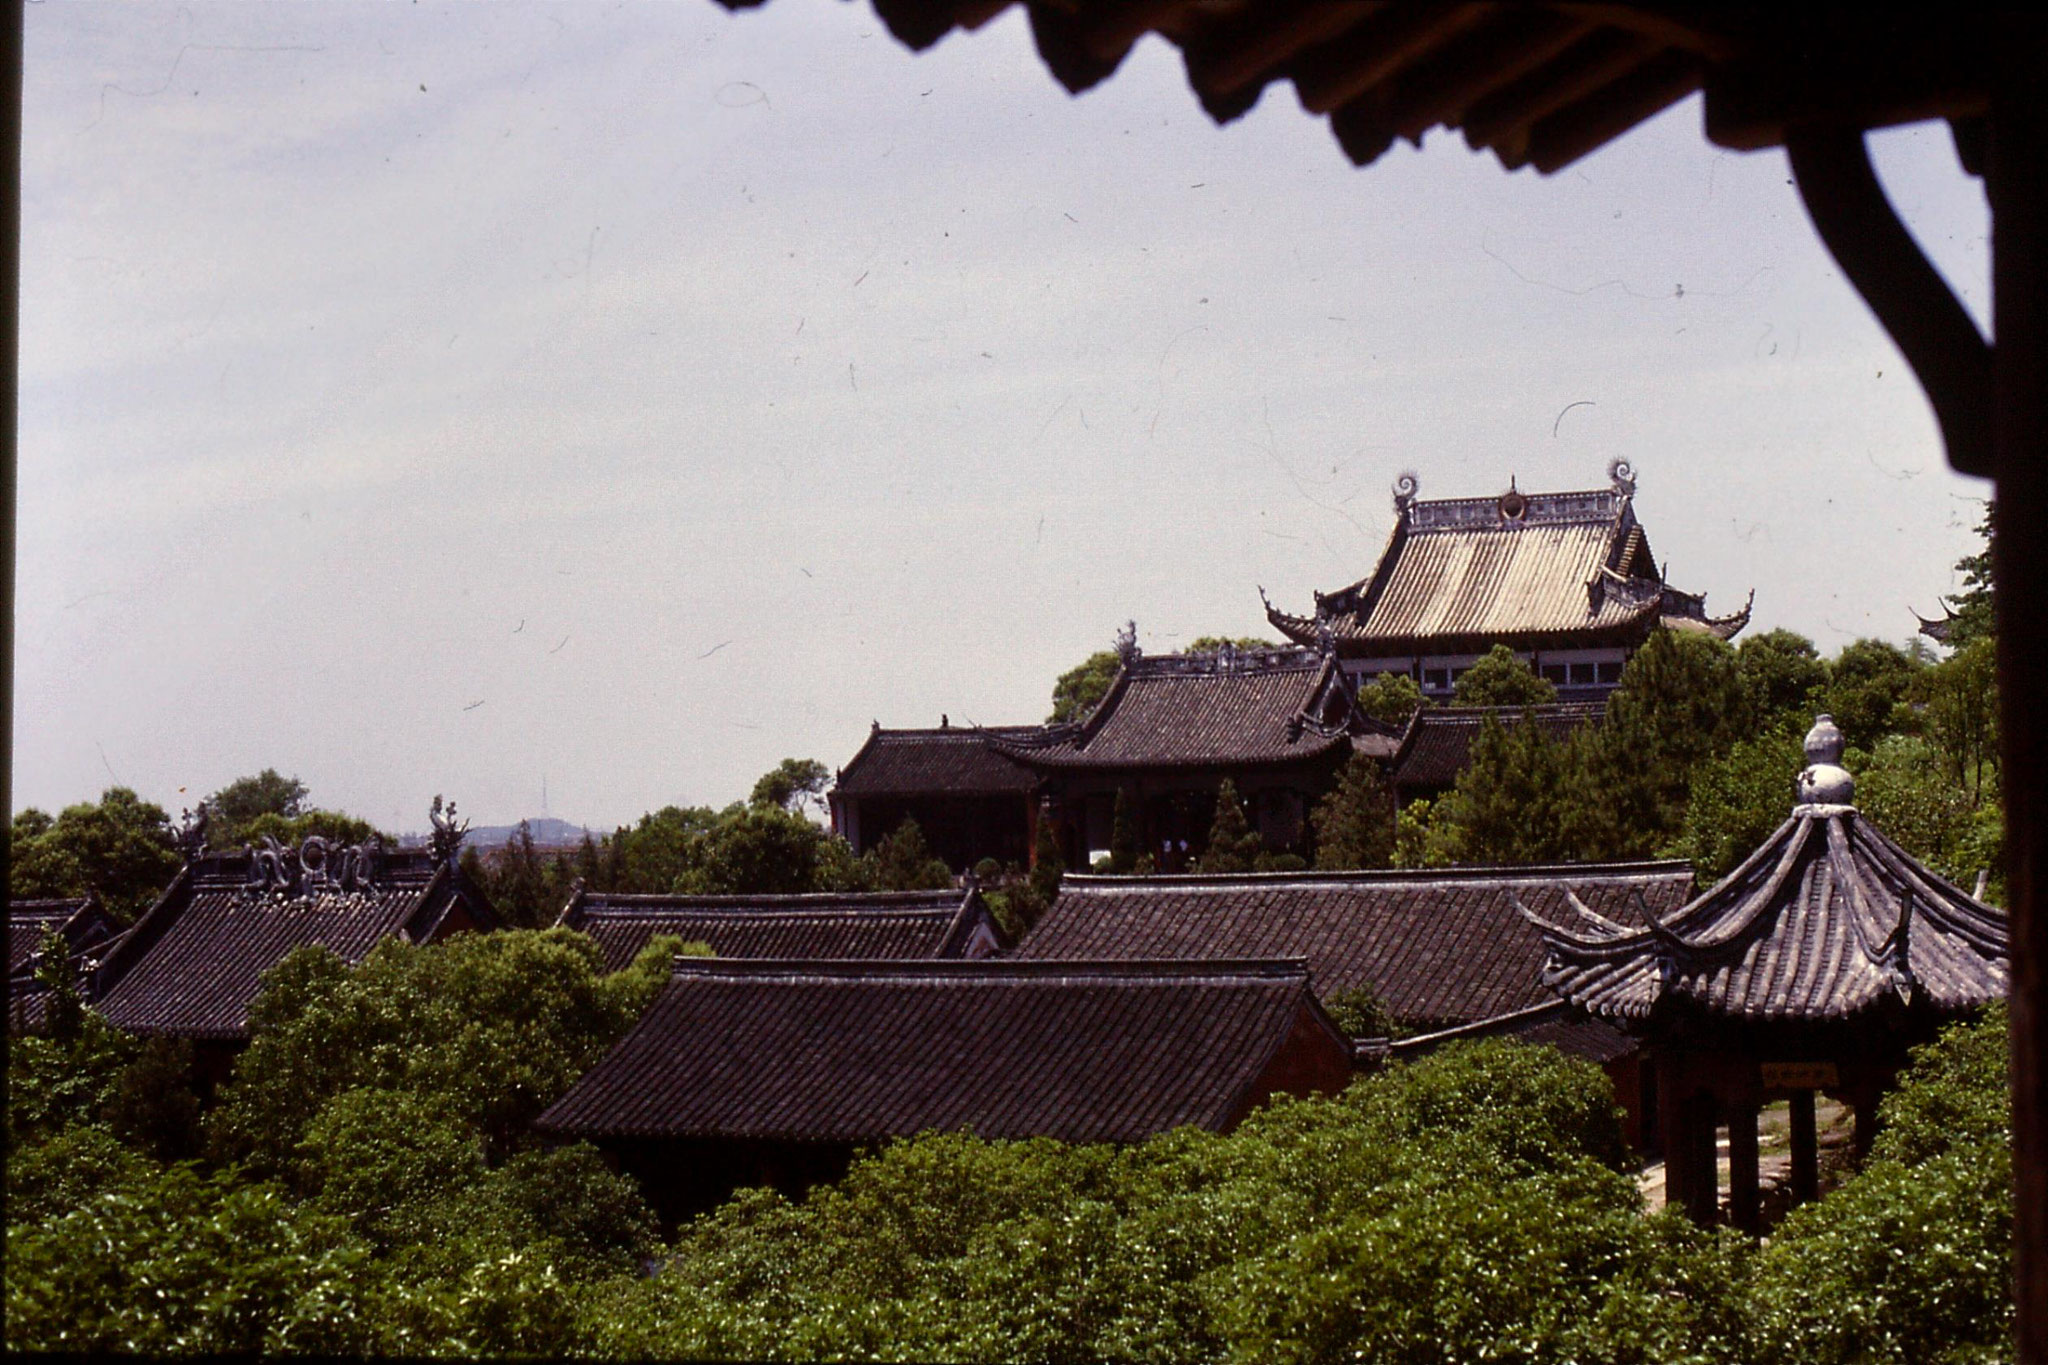 3/6/1989: 4: Shaoxing